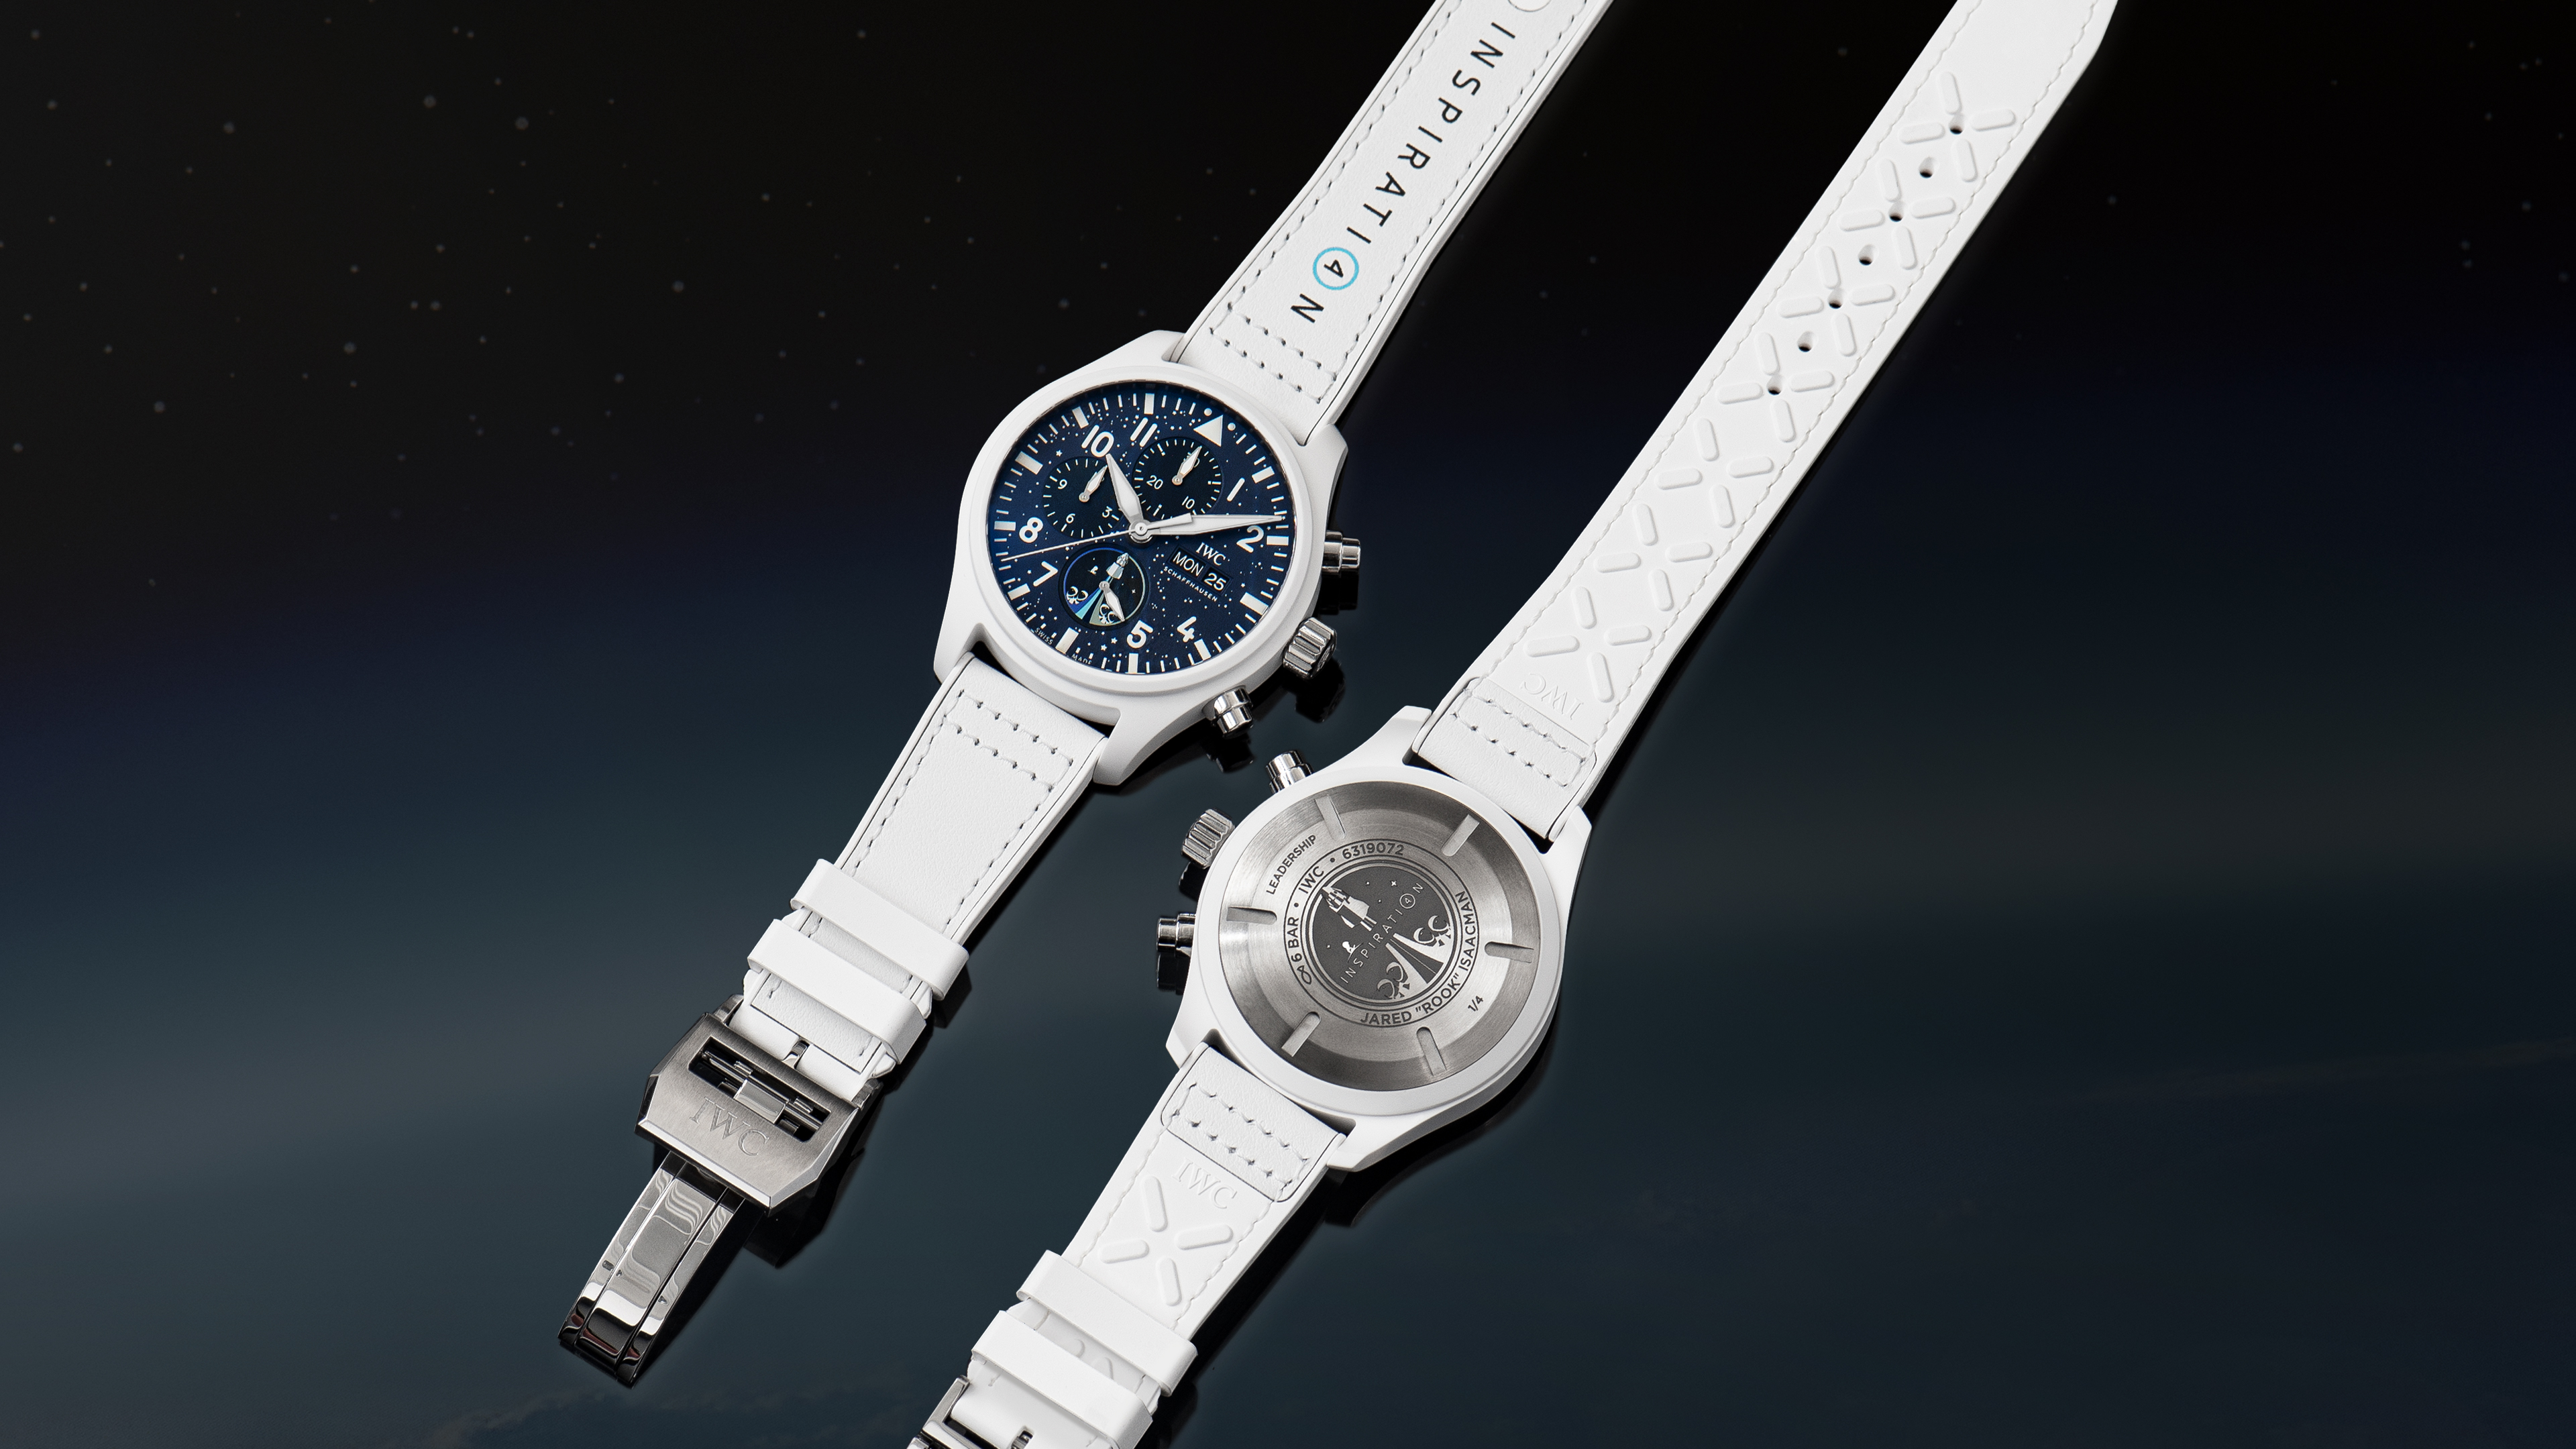 Inspiration4 watches to be auctioned off in support of St. Jude.